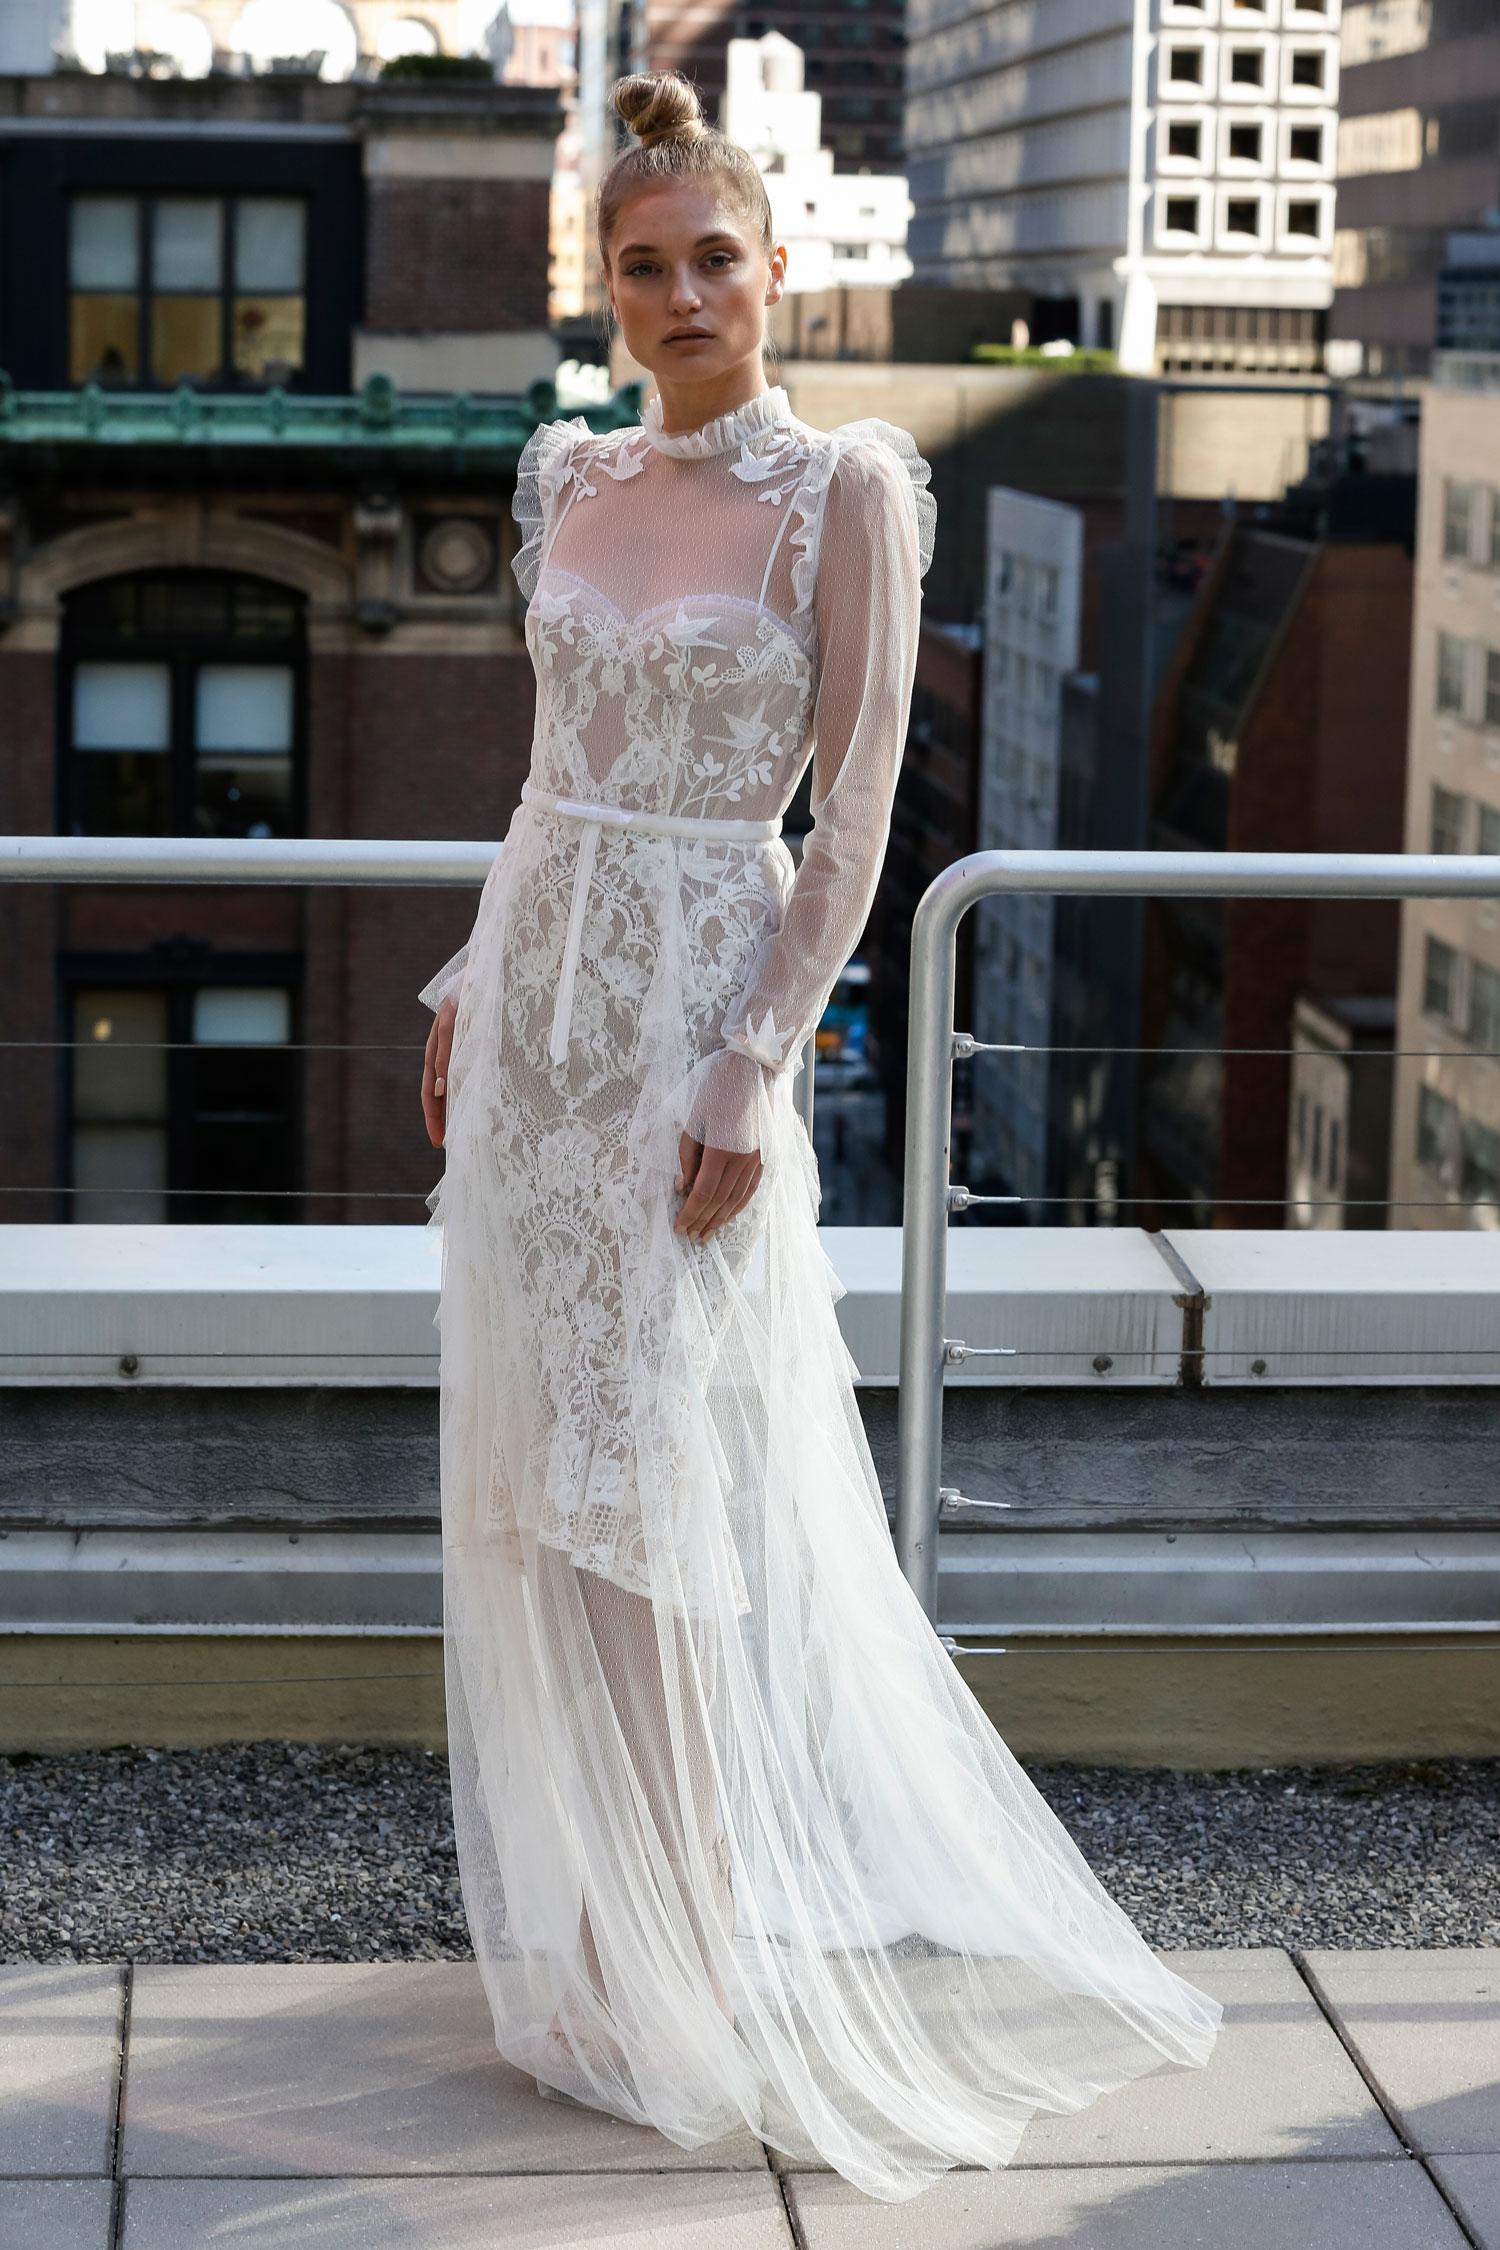 Eisen Stein love birds lace long sleeve wedding dress with frills puffy sleeves